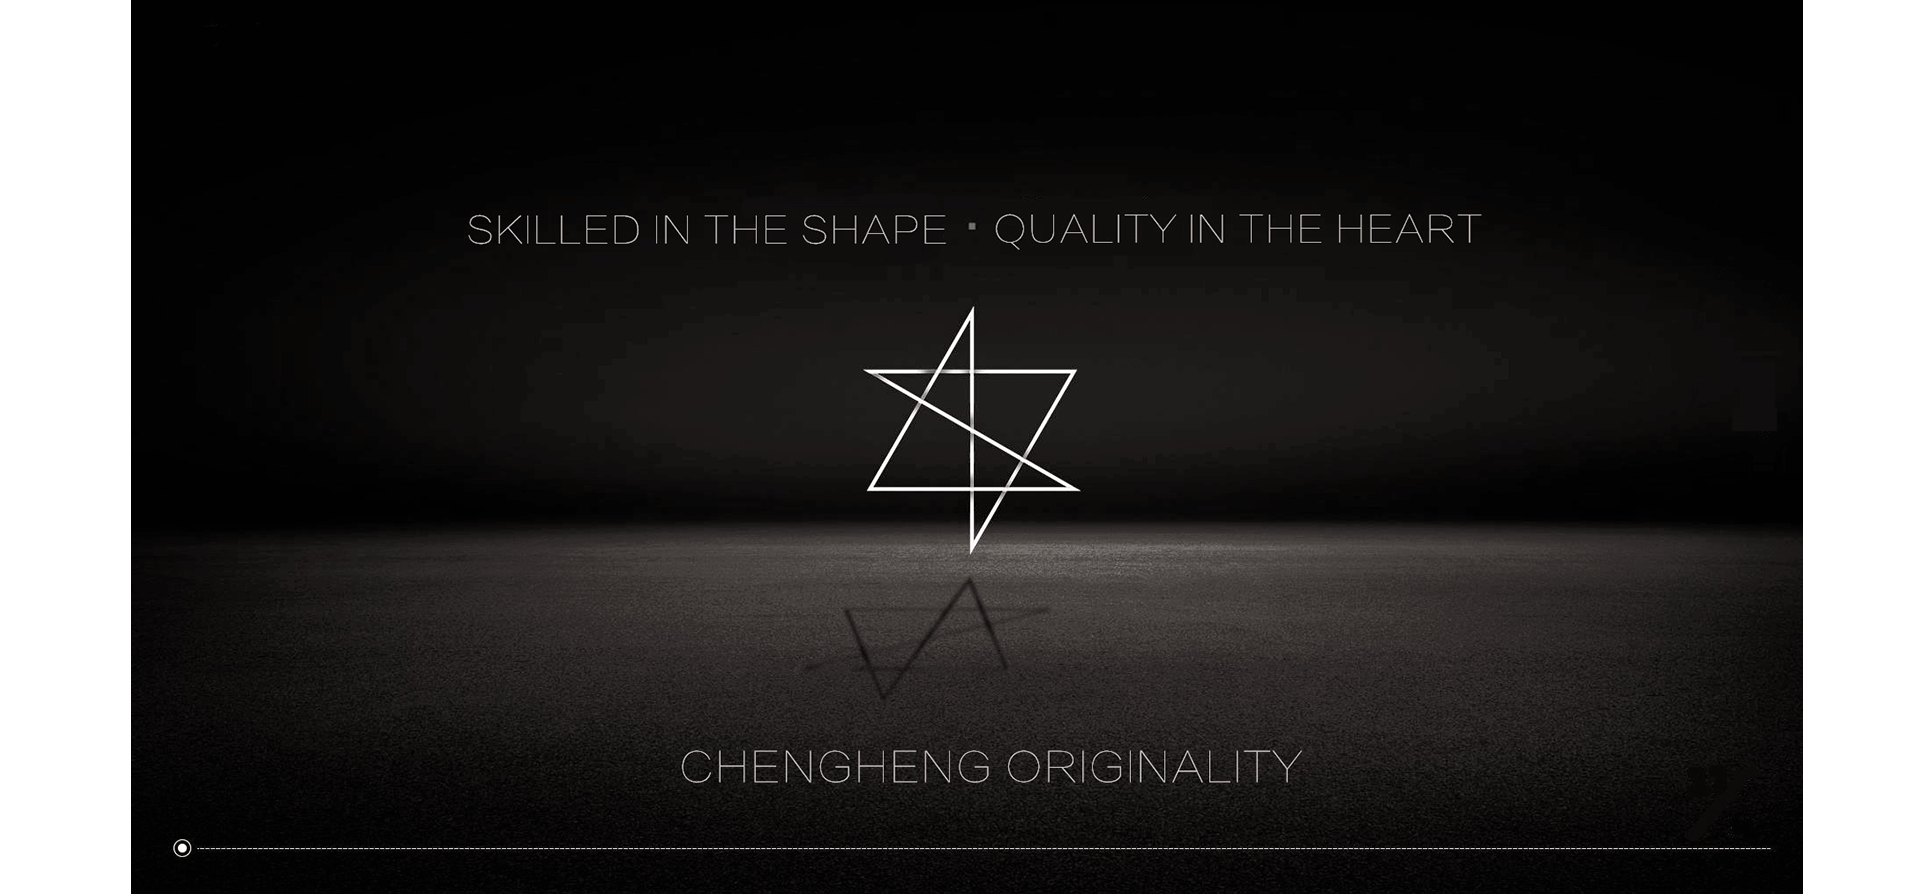 Skilled In The Shape, Quality In The Heart, ChengHeng Originality